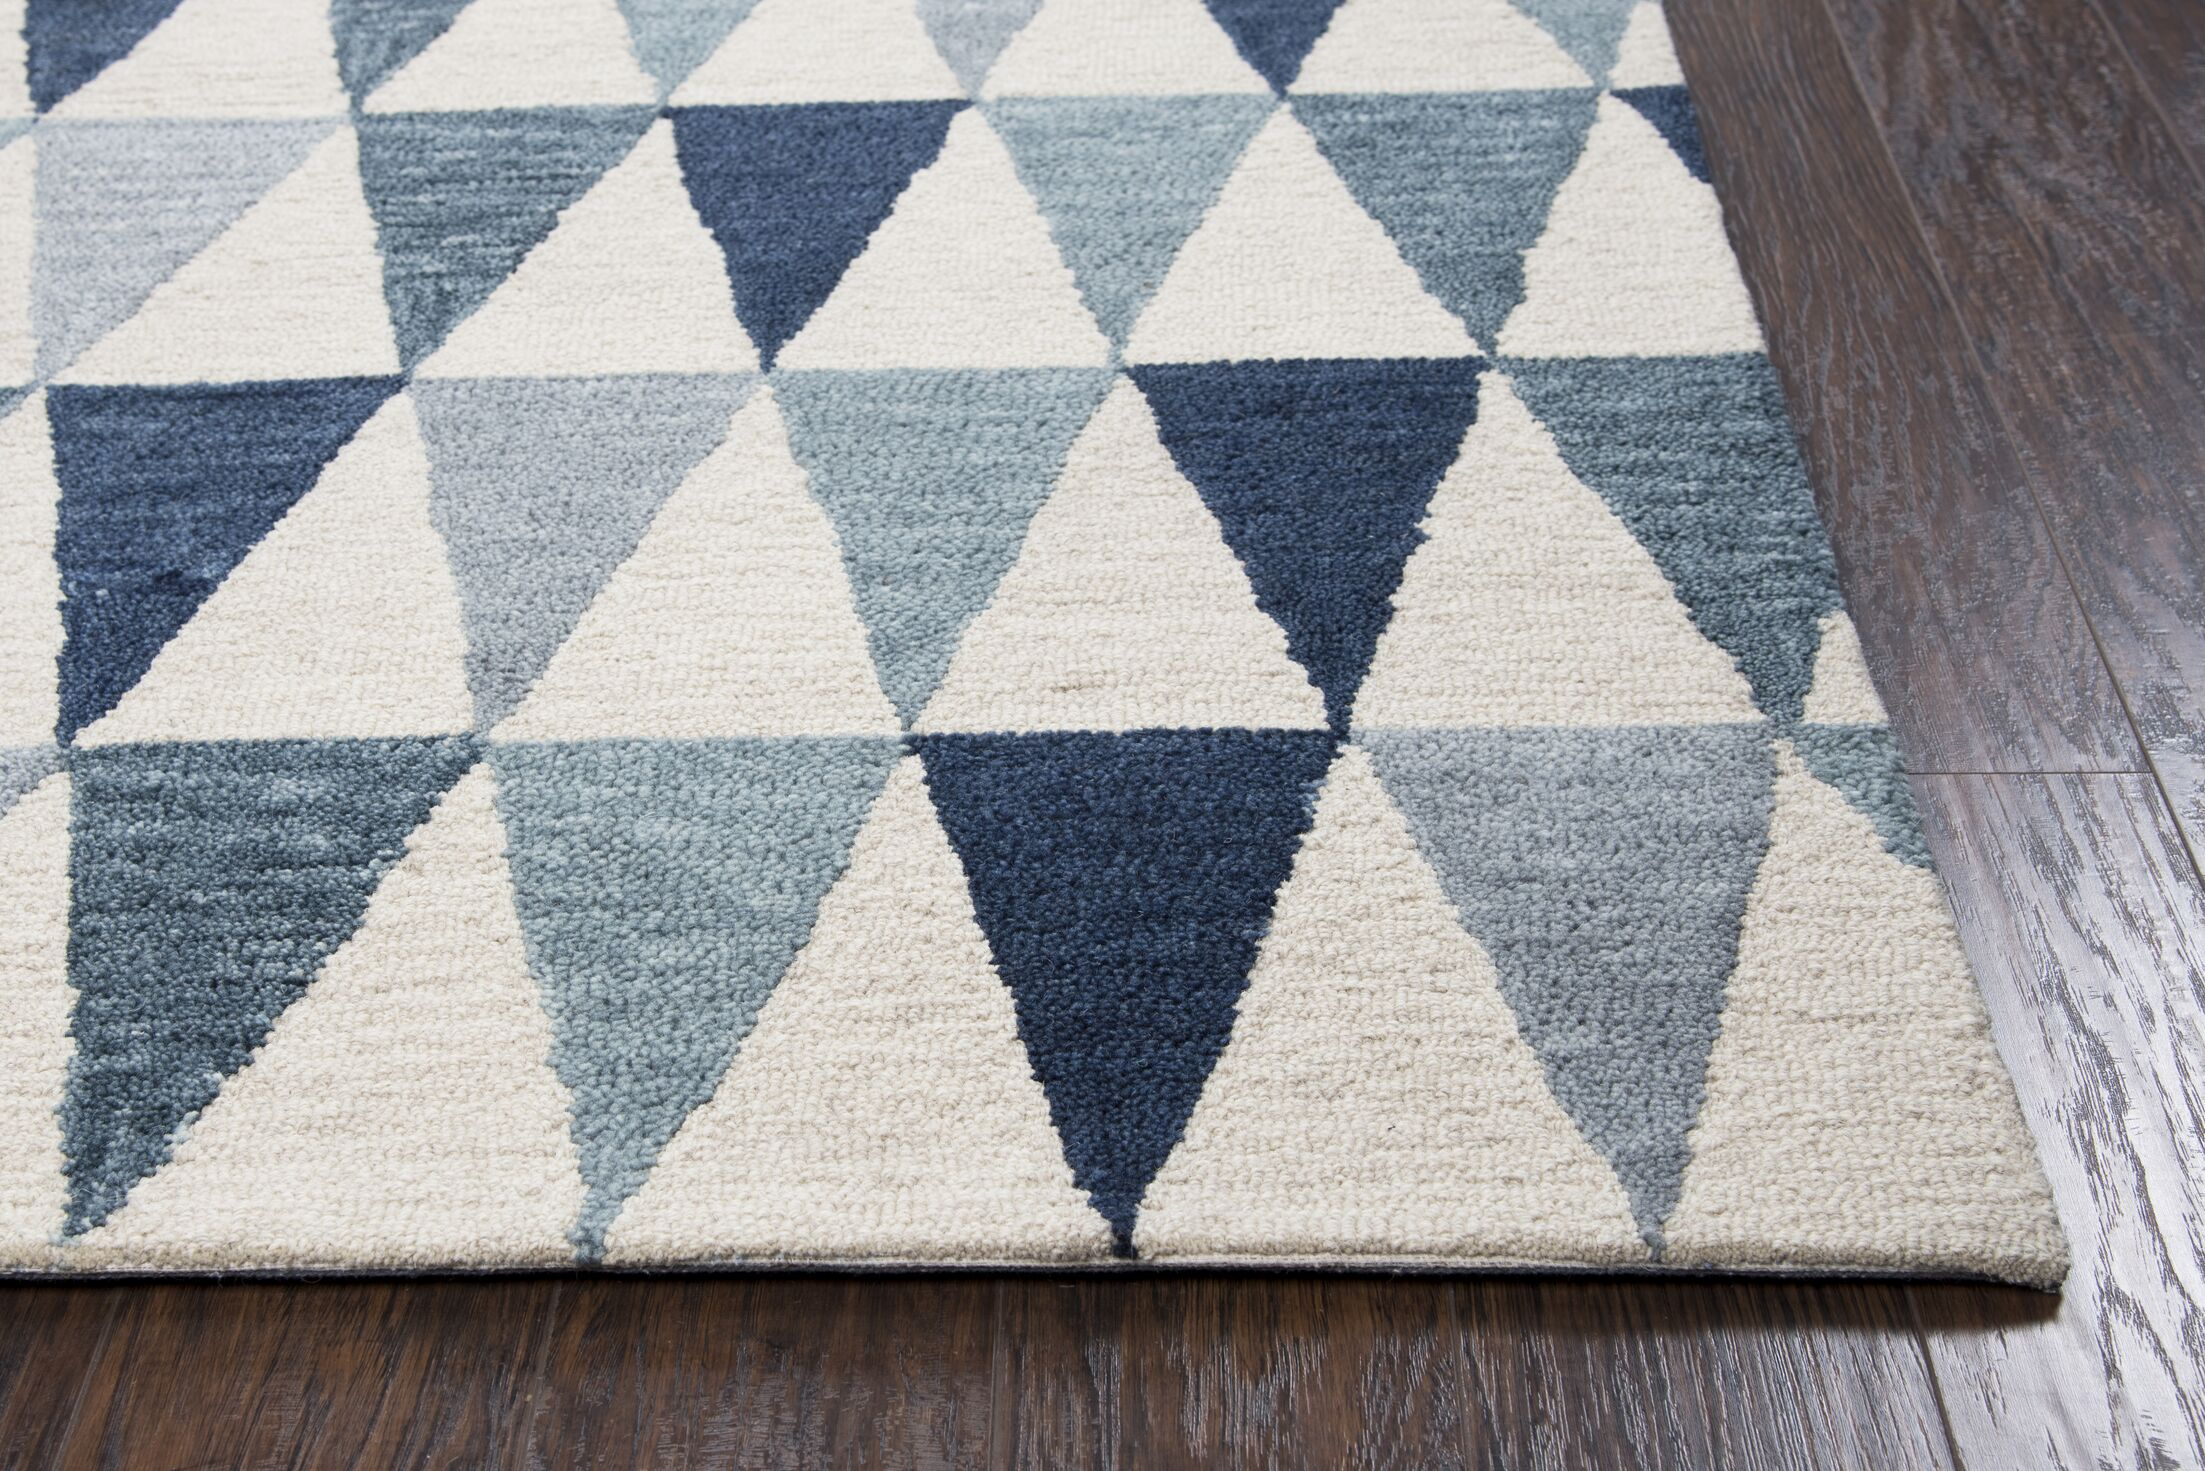 Malcolm Hand-Tufted Wool Gray/Blue Area Rug Rug Size: Rectangle 8' x 10'